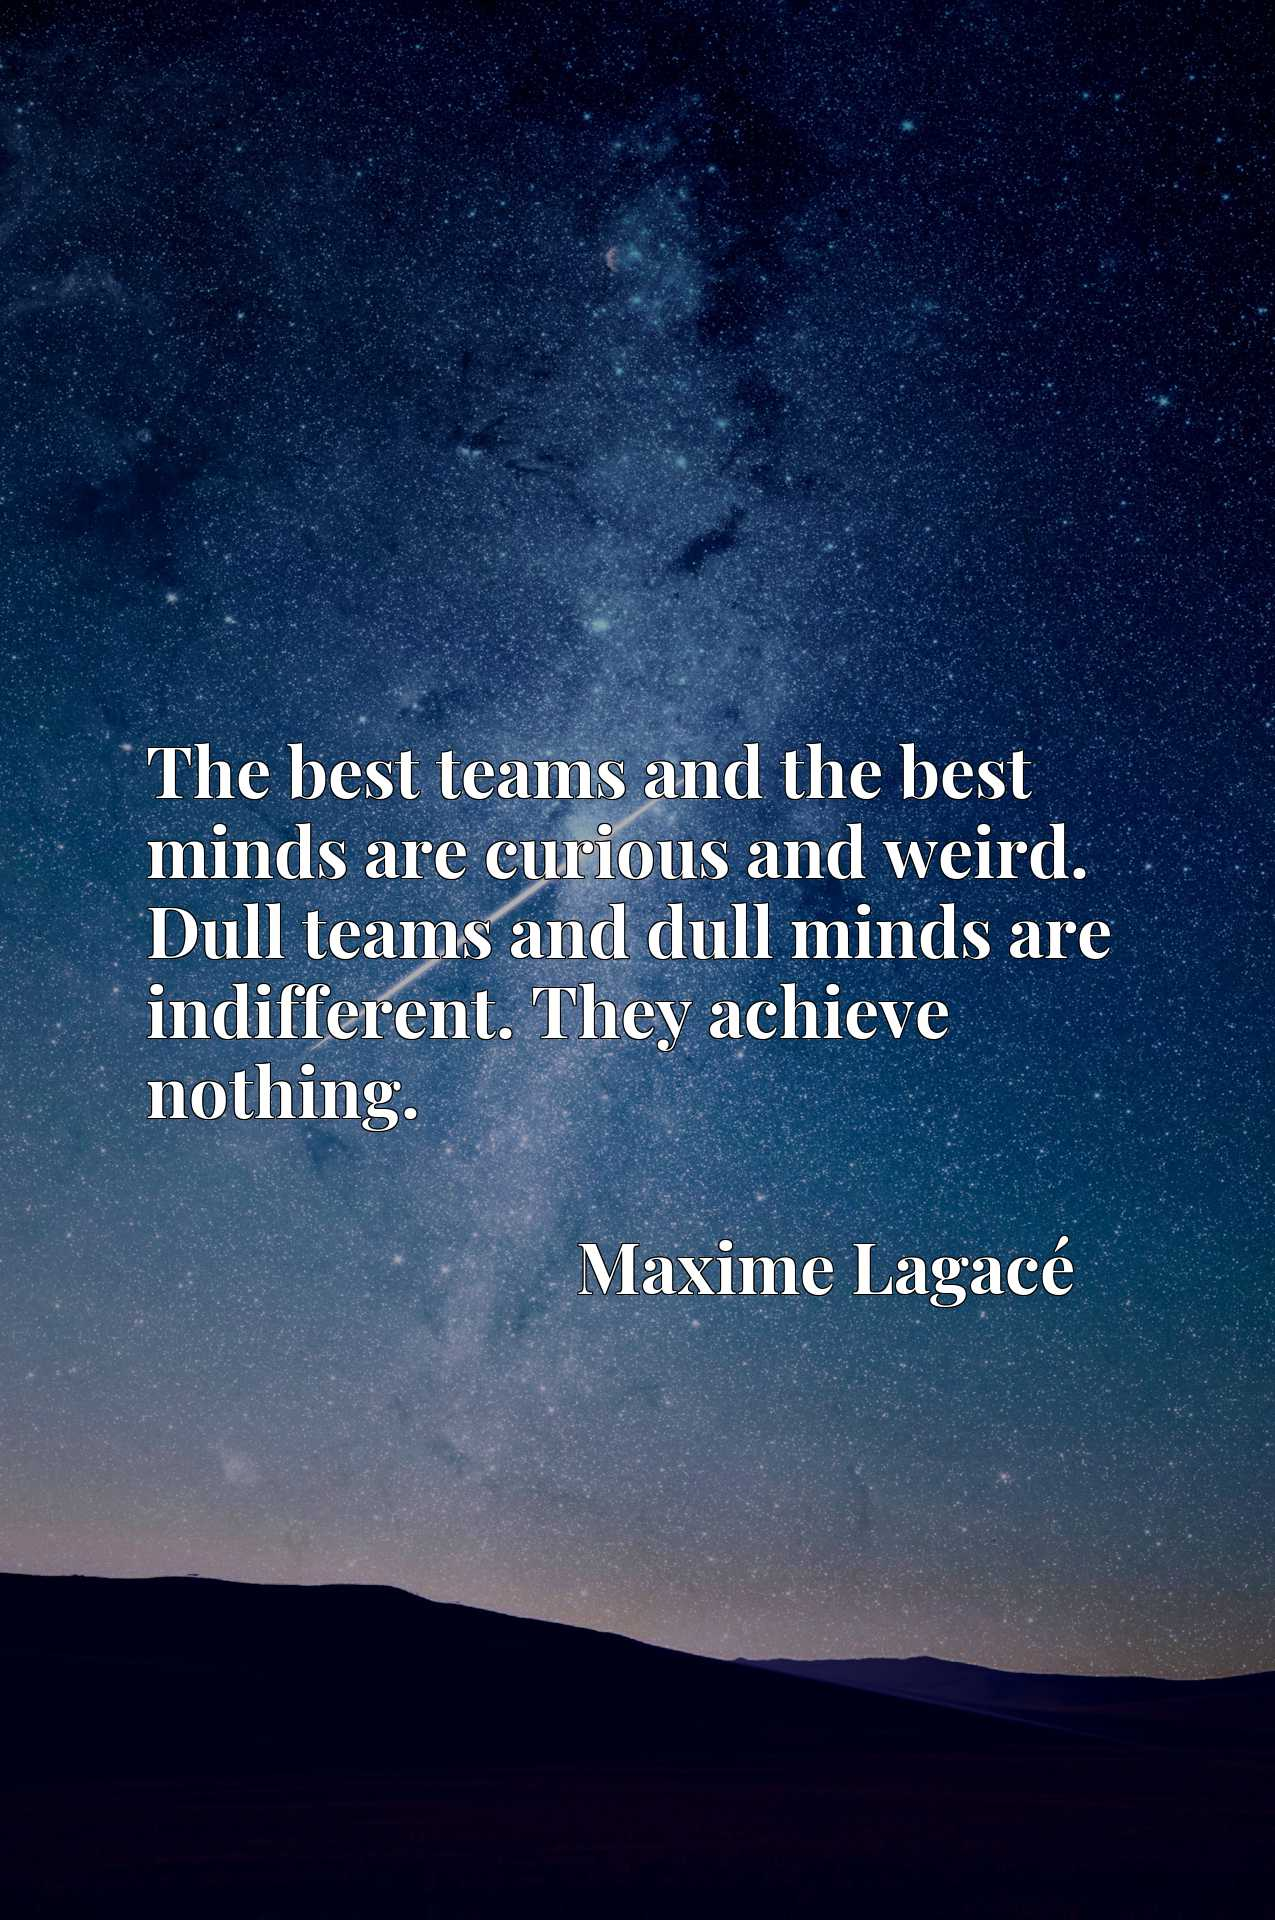 The best teams and the best minds are curious and weird. Dull teams and dull minds are indifferent. They achieve nothing.